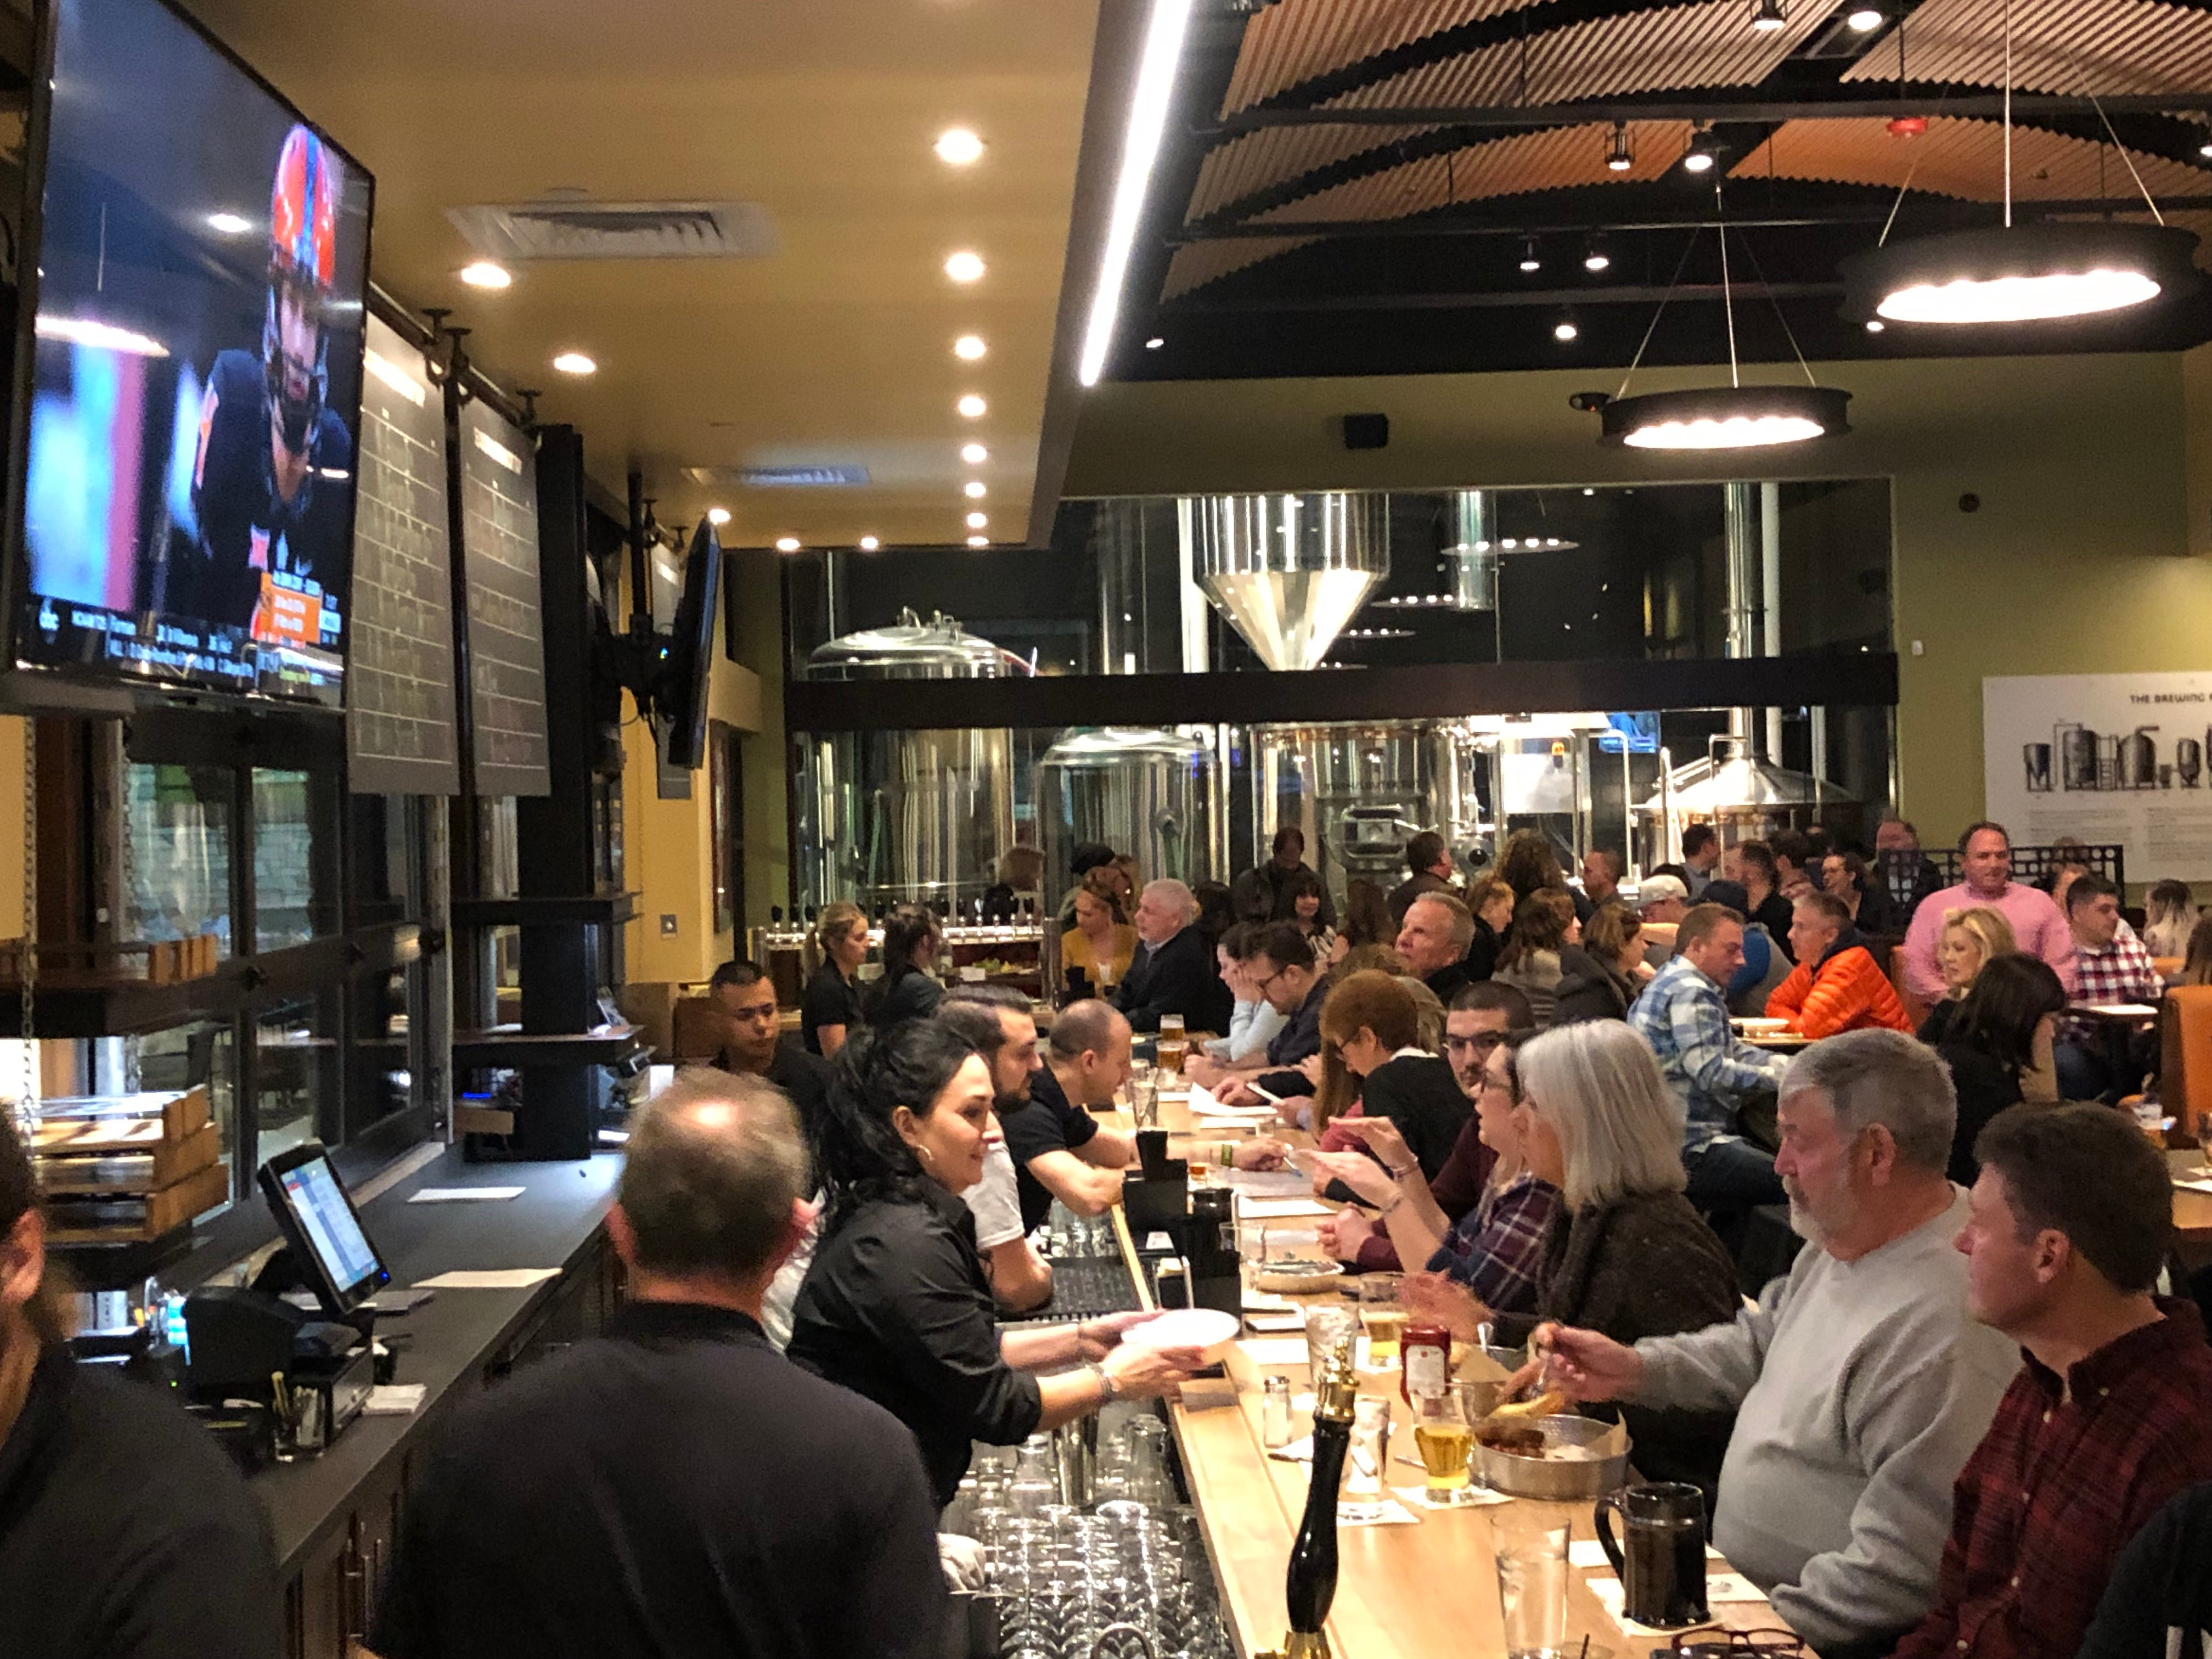 A packed house at the bar during the soft opening for Iron Hill Brewery & Restaurant.